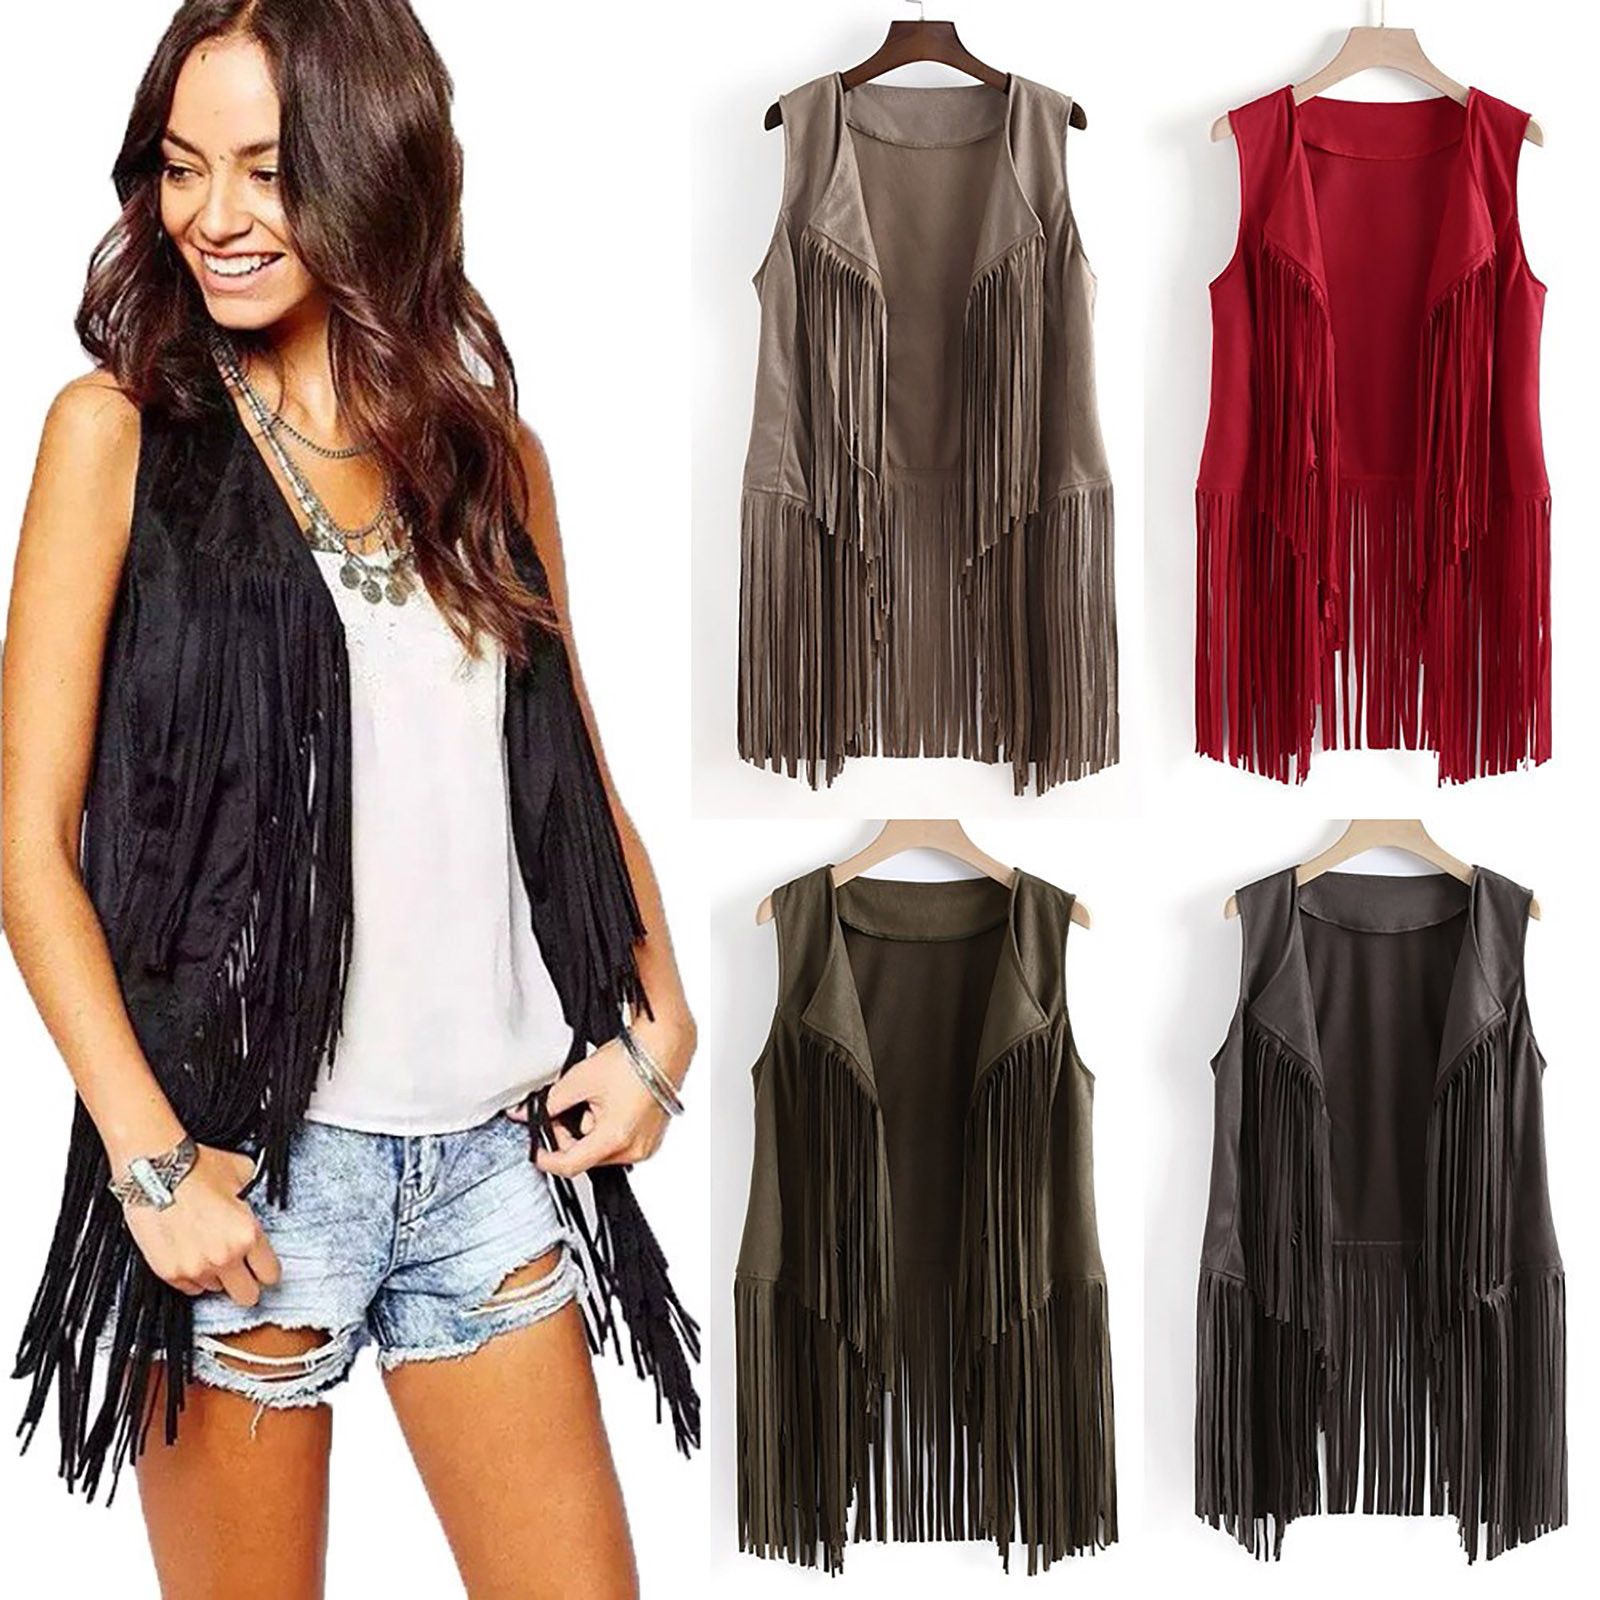 Fashion Women Autumn Winter Solid Colors Suede Ethnic Sleeveless Tassels Fringed Vests Jacket Cardigan Coats Outerwear Casaco#G3